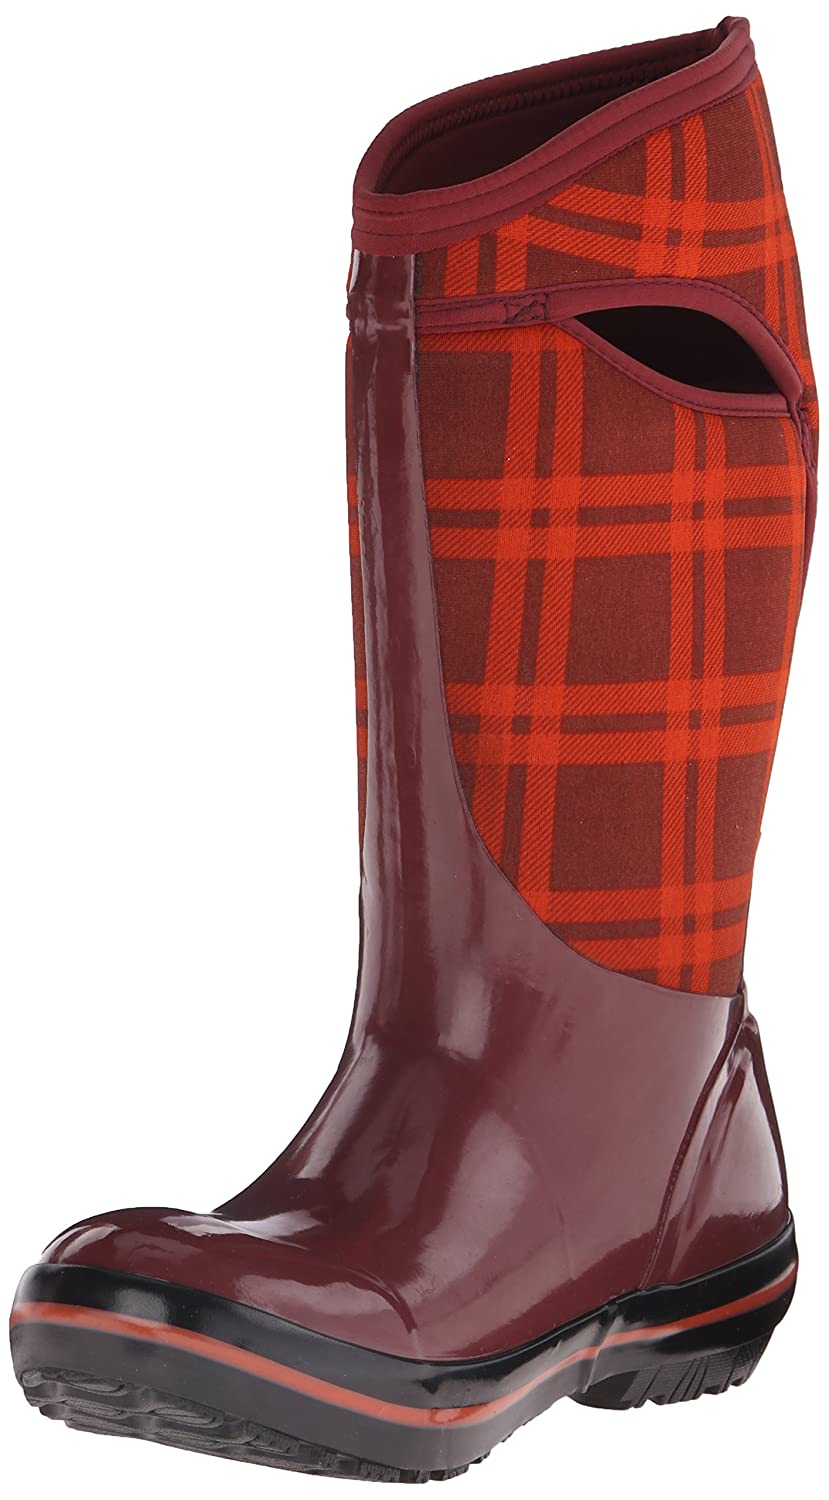 Bogs Women's Plimsoll Plaid Tall Winter Snow Boot B00QMMDCWI 6 B(M) US|Ox Blood